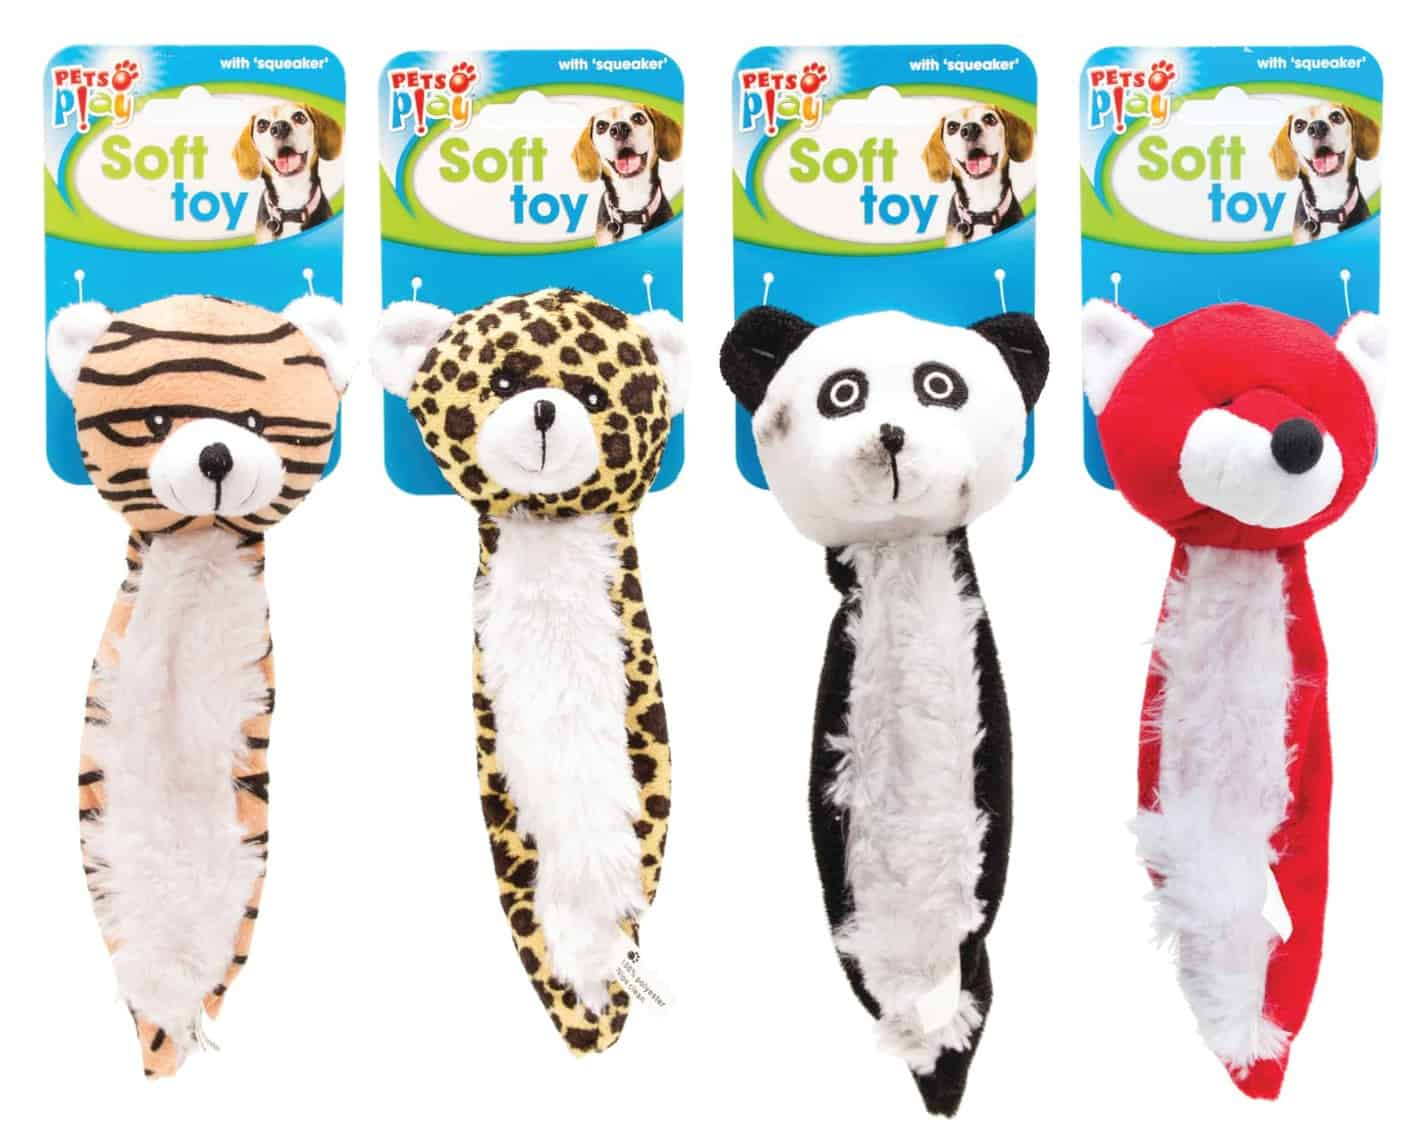 Pets at Play Soft Dog Toy with Squeaker, Animals & Pet Supplies by Dog In A Box